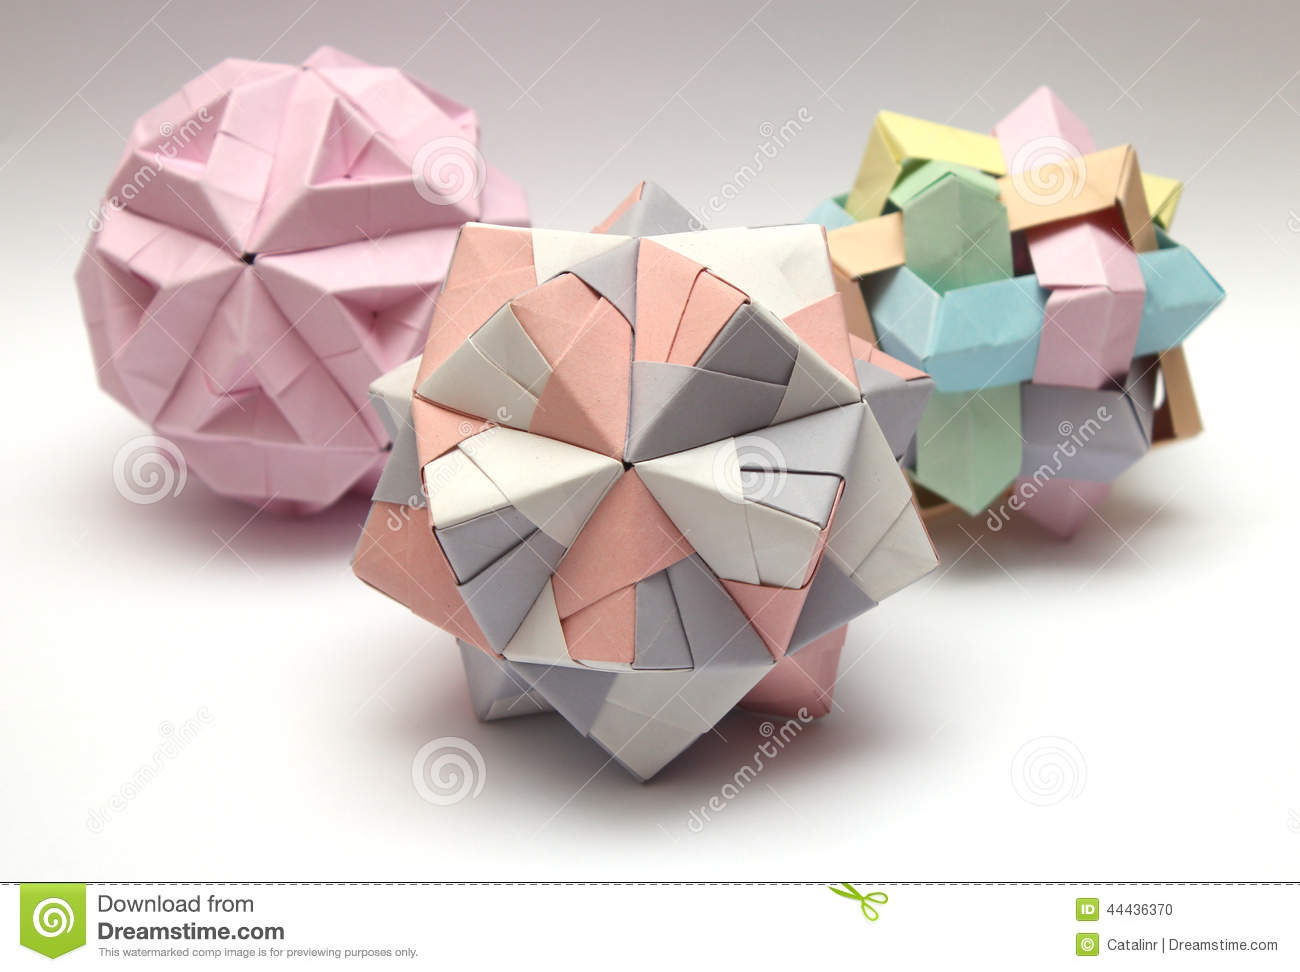 Group Of 3d Origami Balls Stock Photo - Image: 44436370 - photo#40